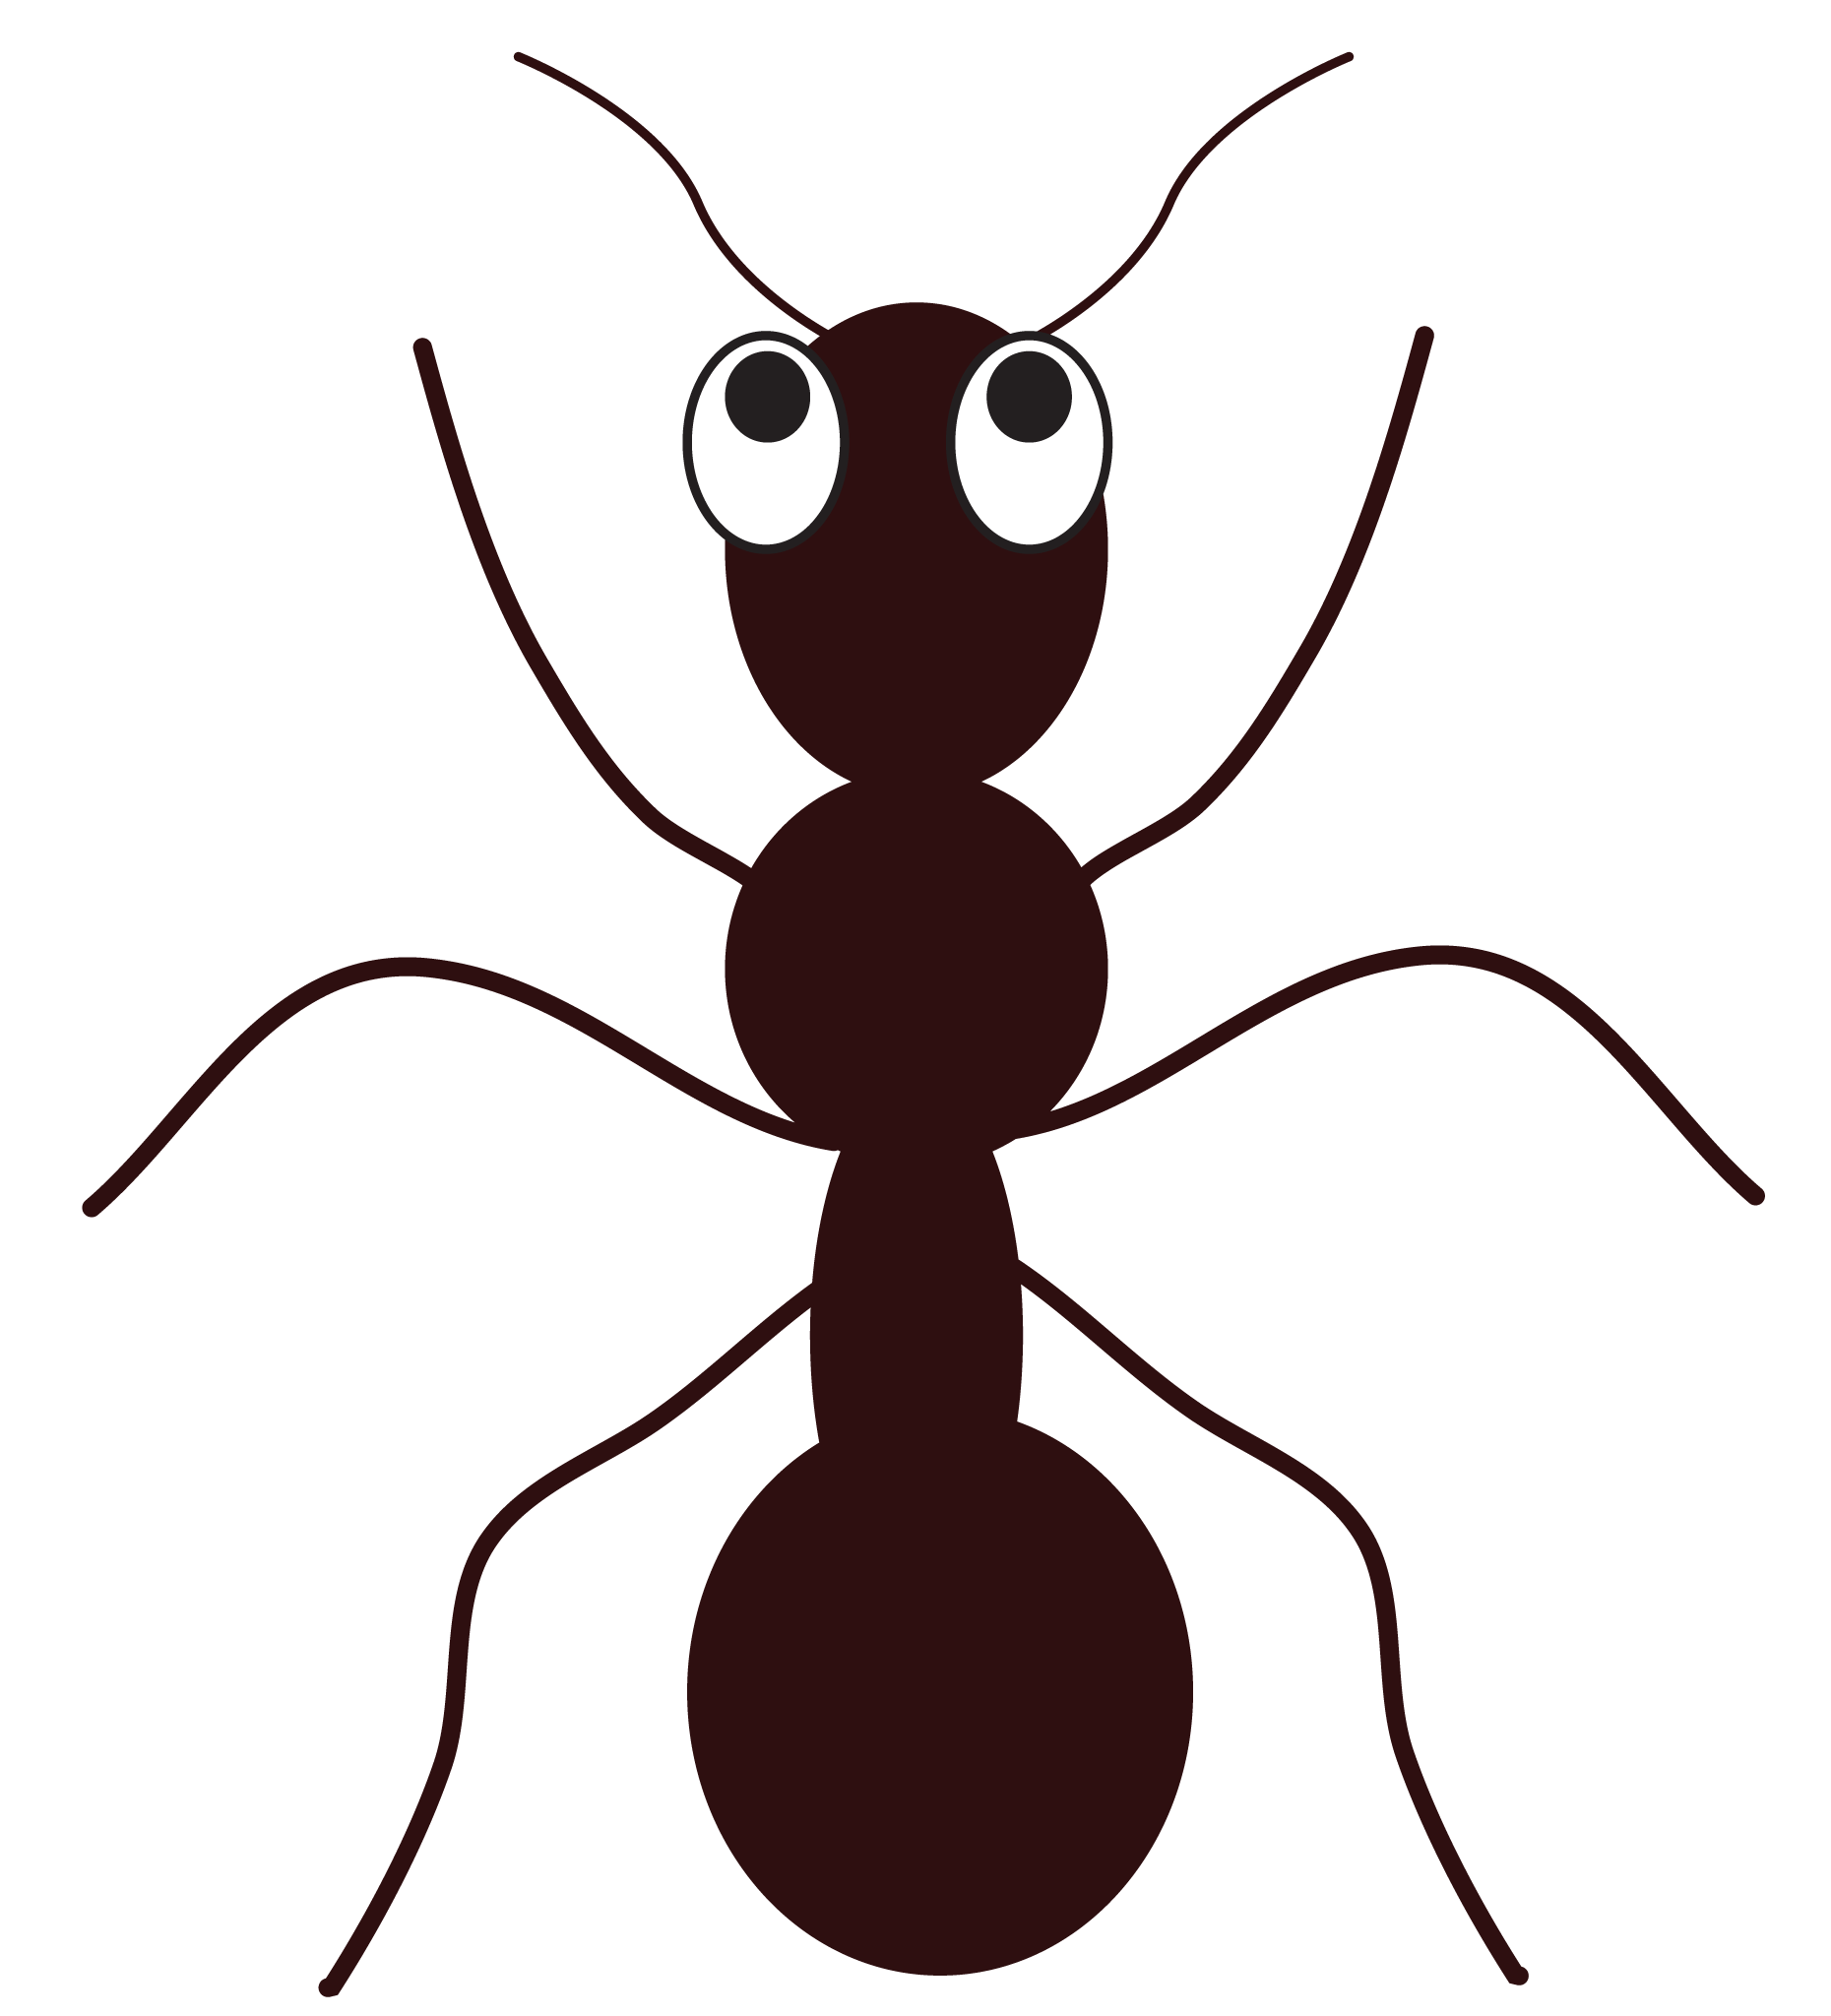 Ant free cliparts. Clipart pencil simple